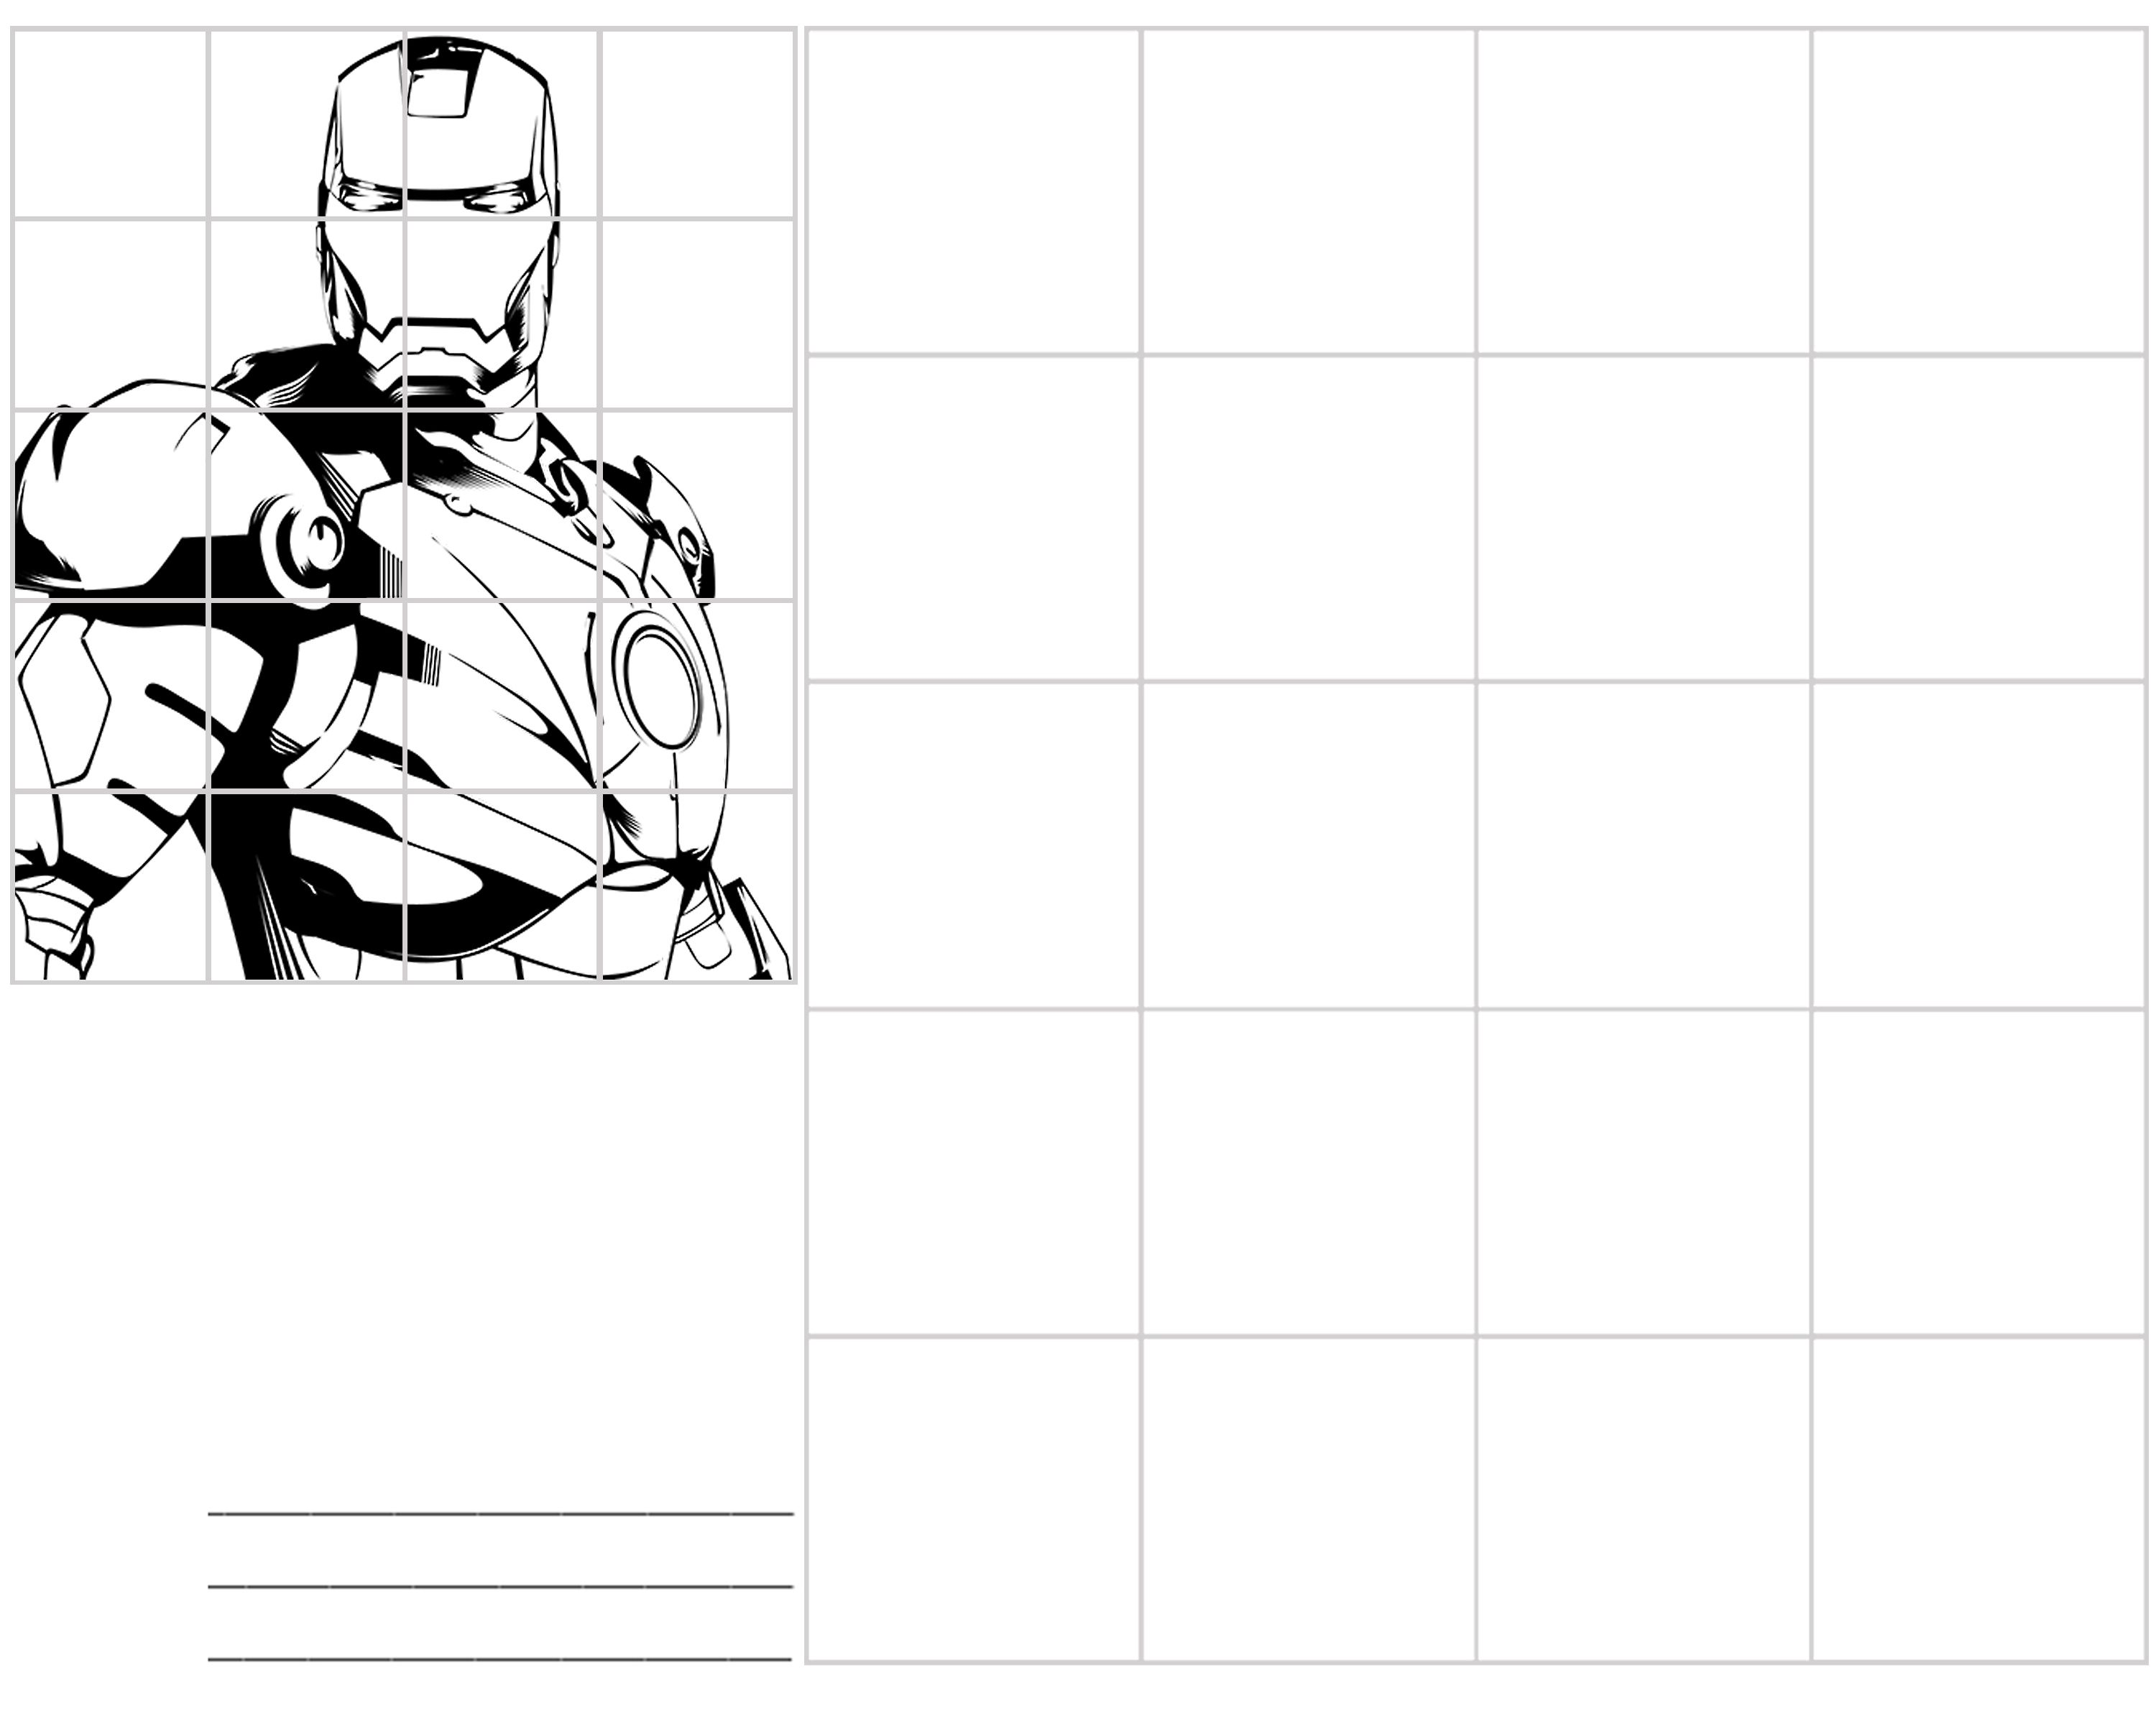 Easy Grid Drawing Worksheets At Getdrawings